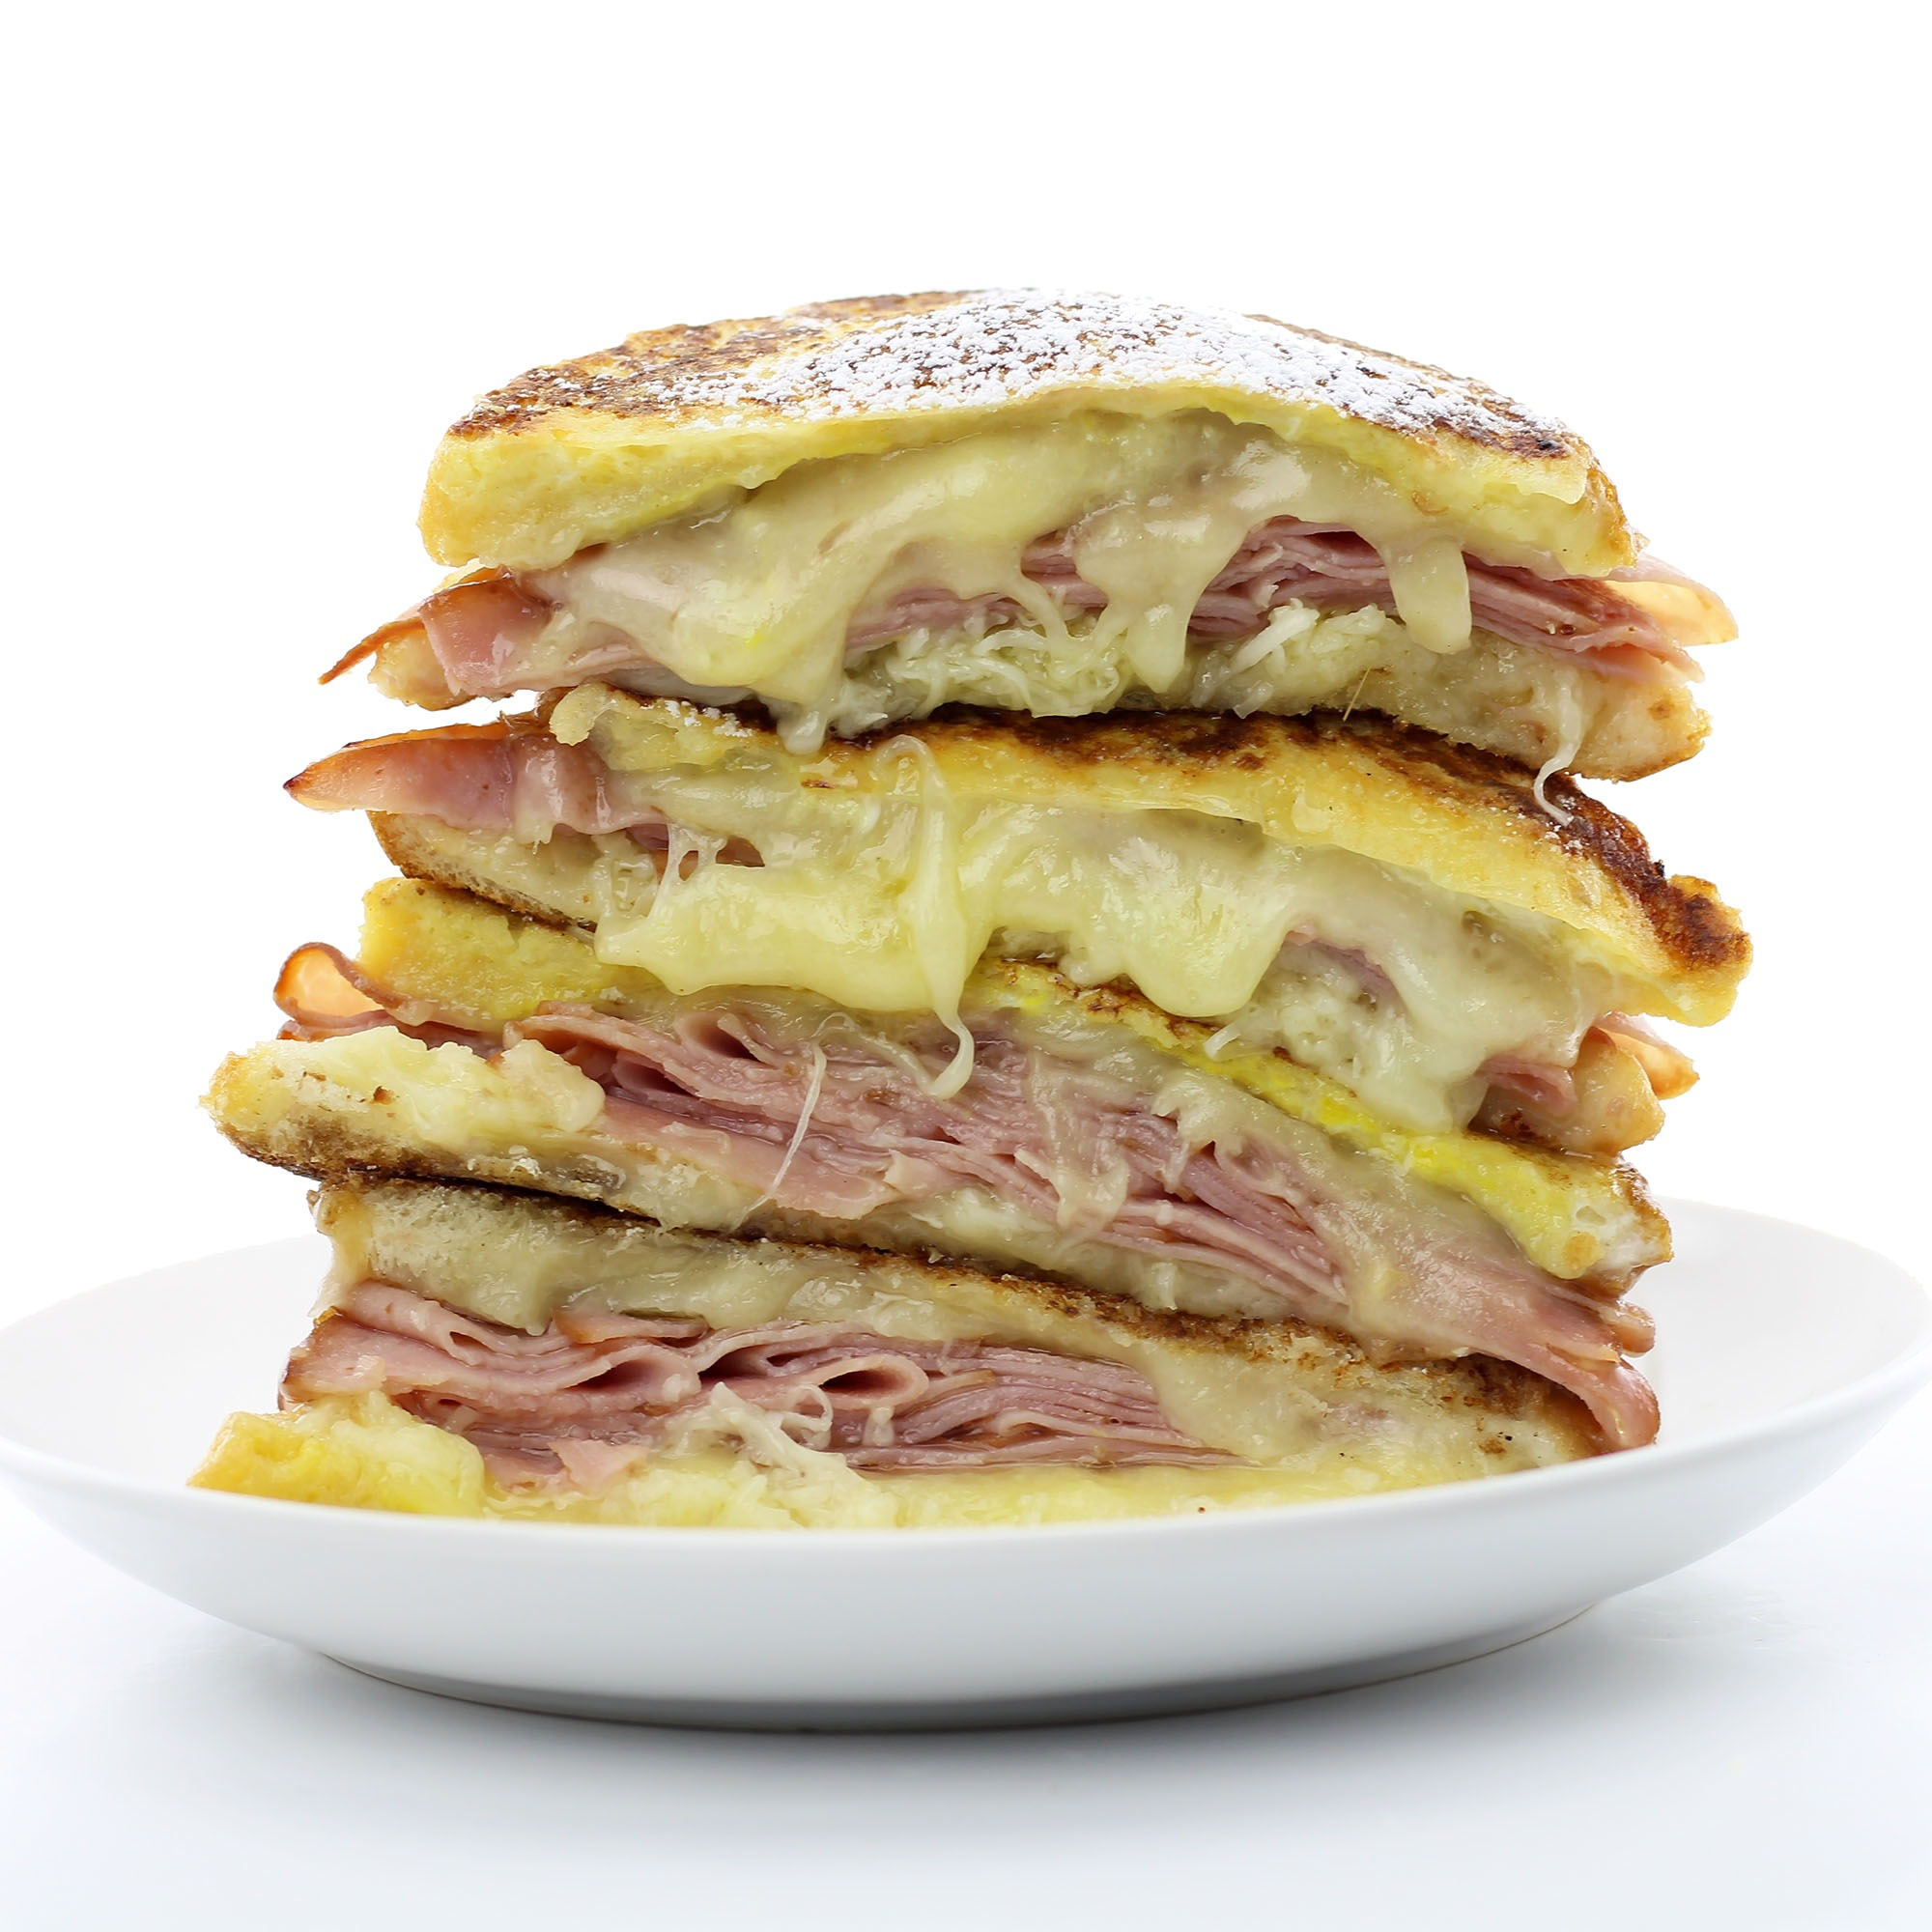 The Midwest Monte Cristo